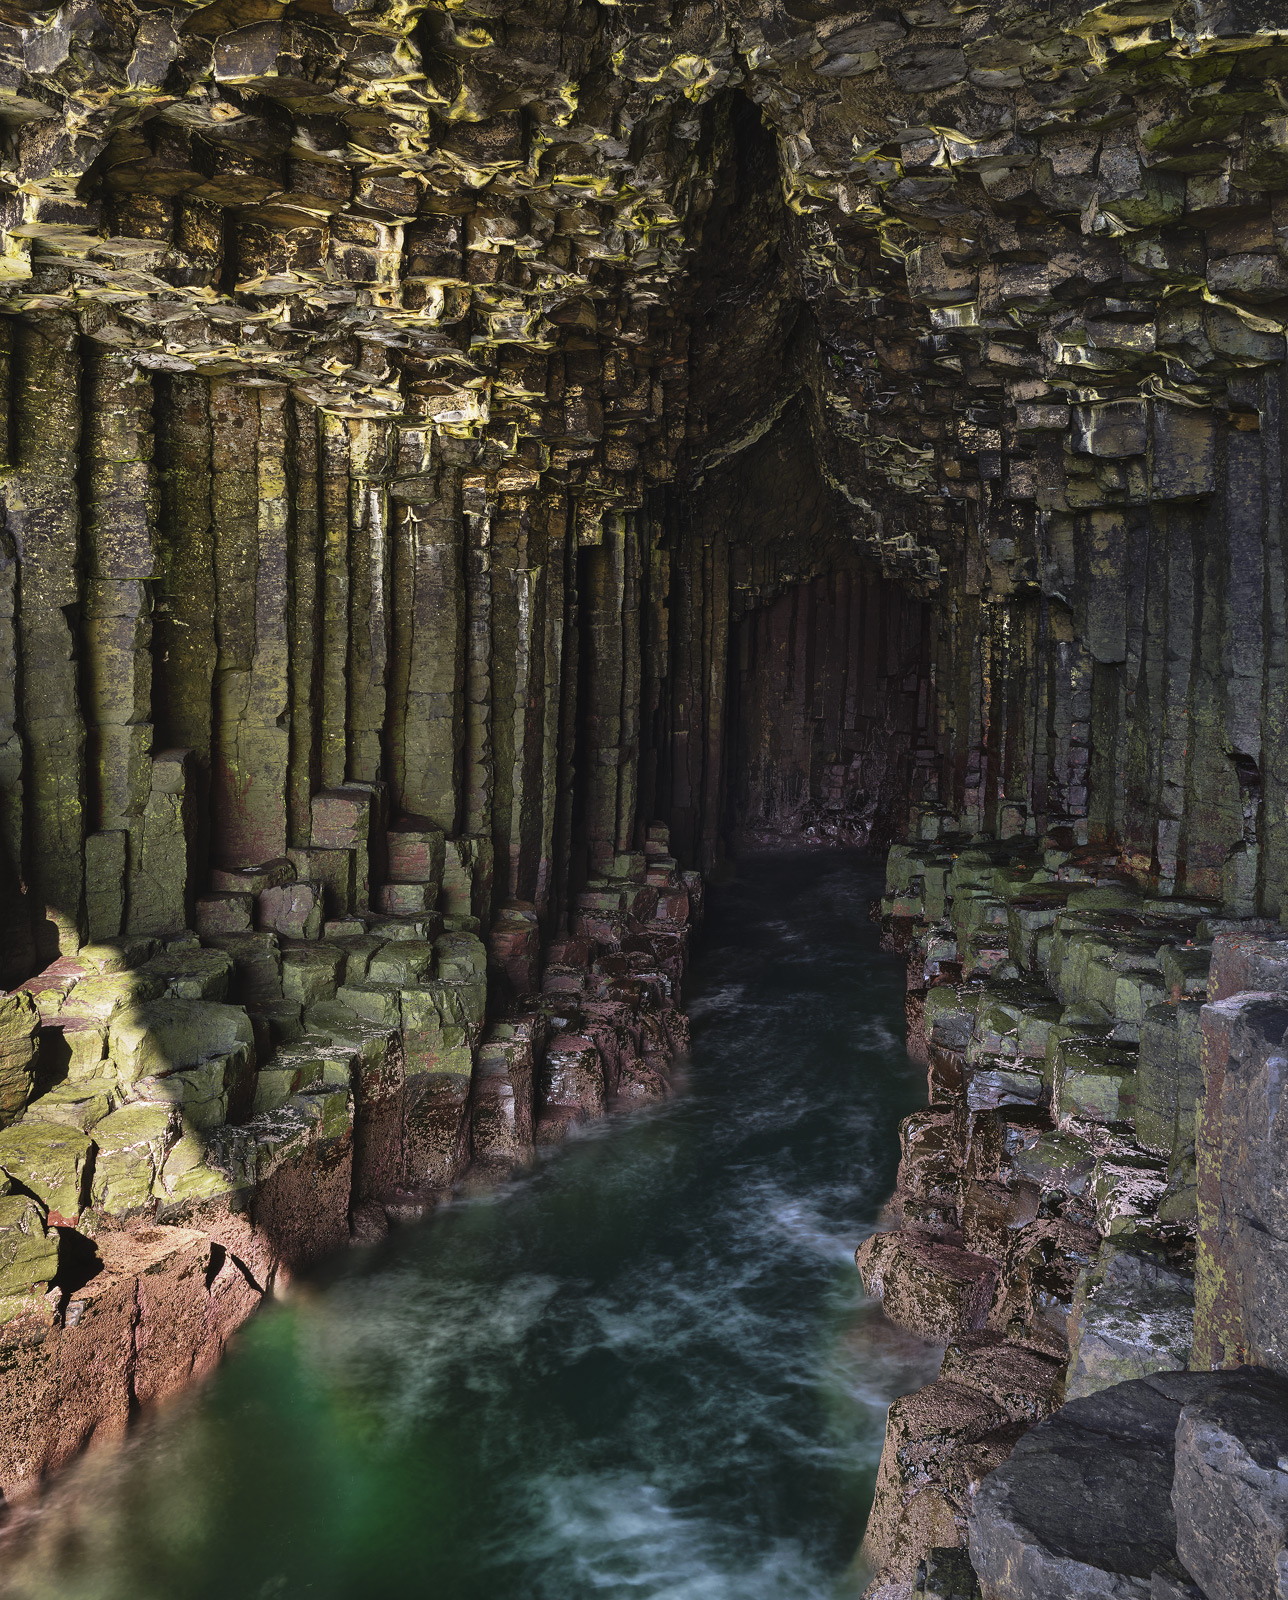 Fingal's cave 2 is just magnificent. It is one of the iconic visual treats provided by the tiny and not particularly ancient...